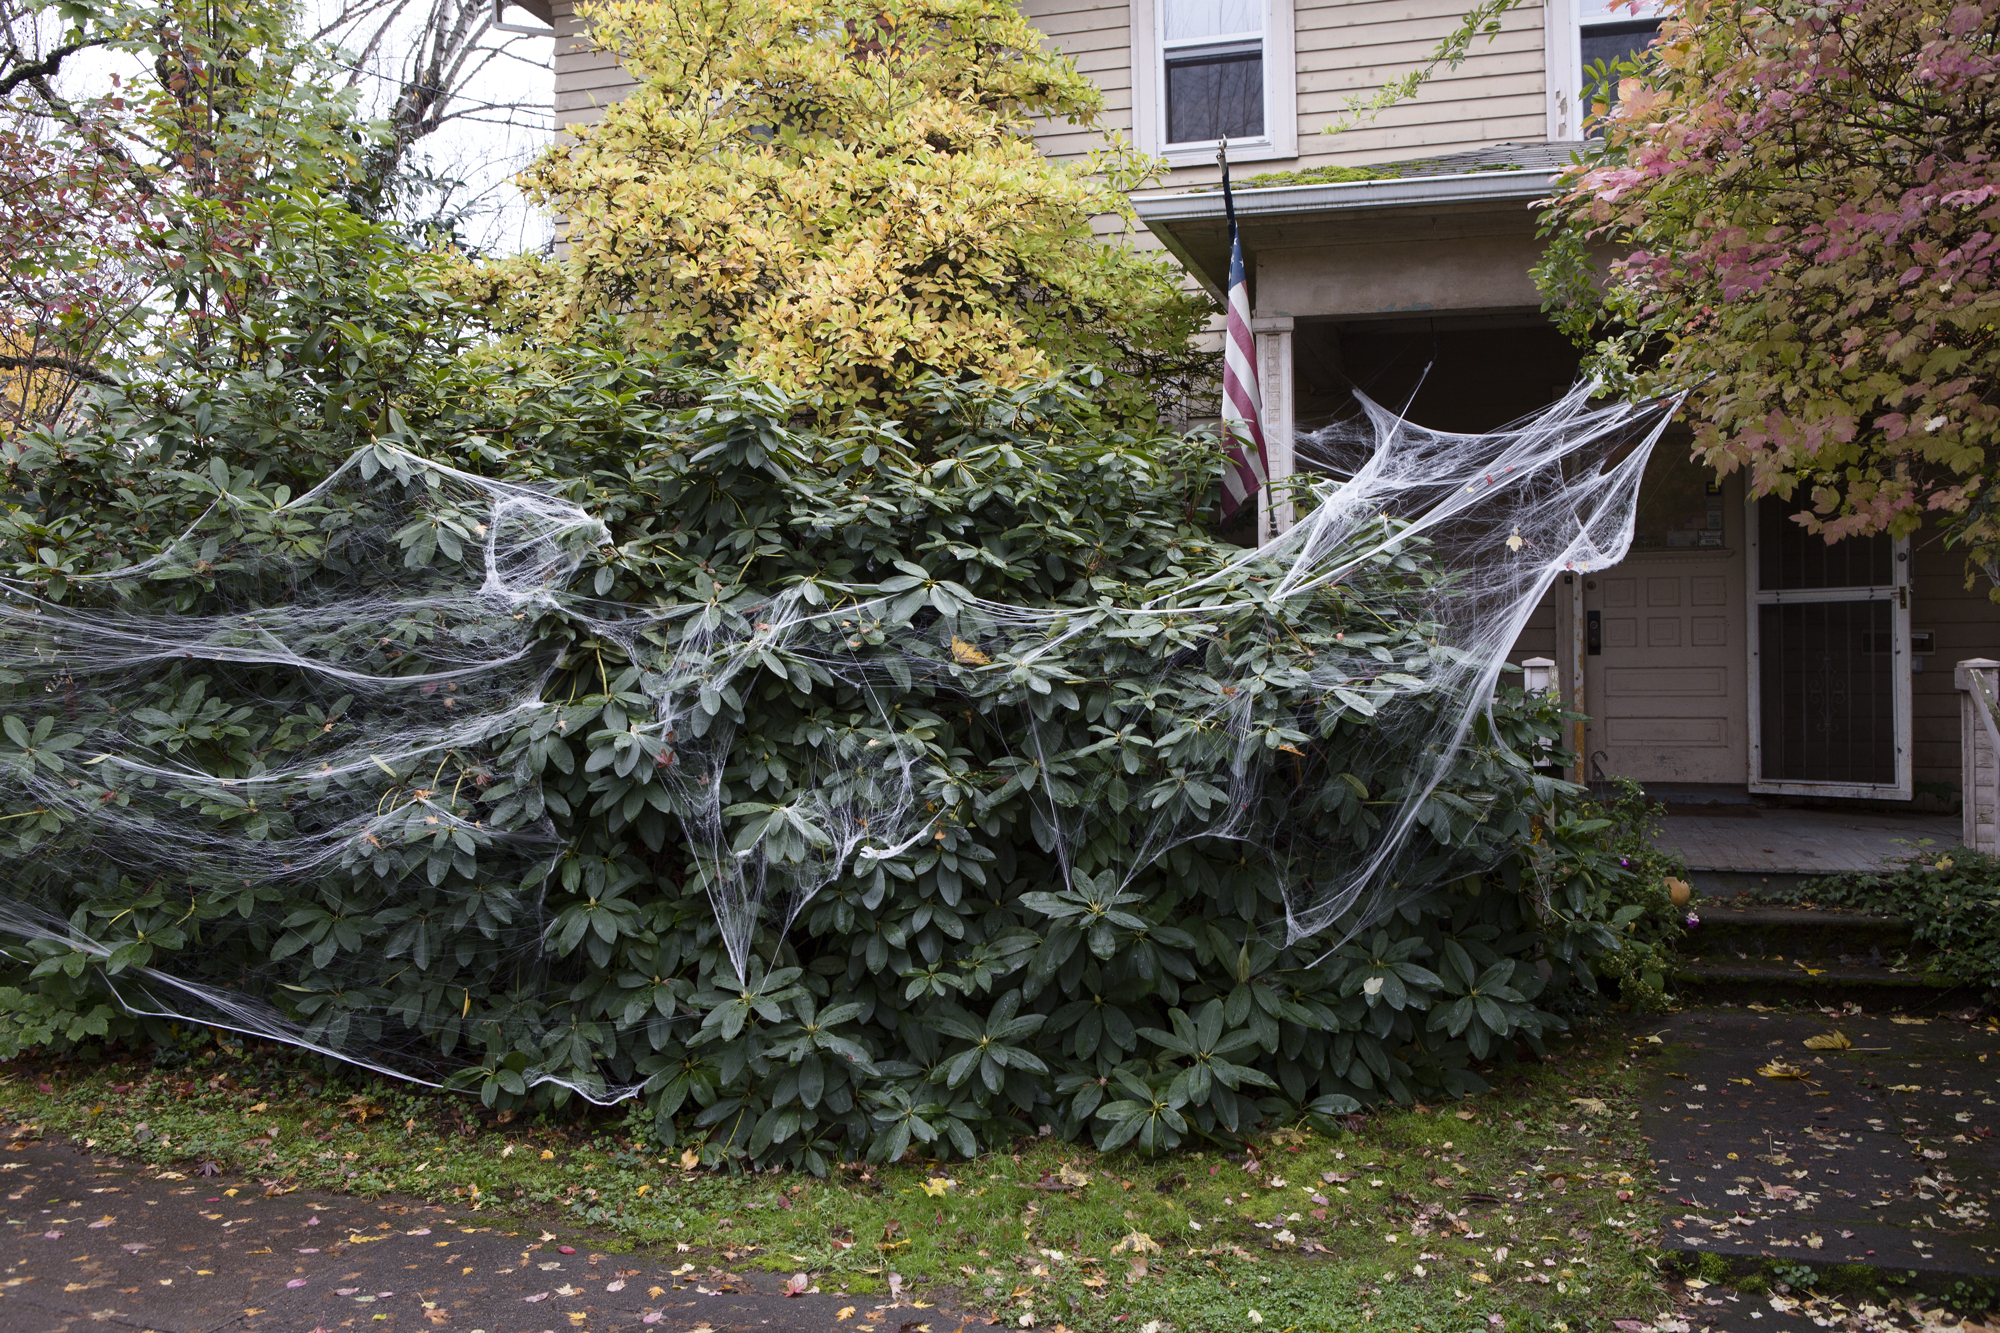 fake_spider_webbing_on_front_porch_bush_web.jpg